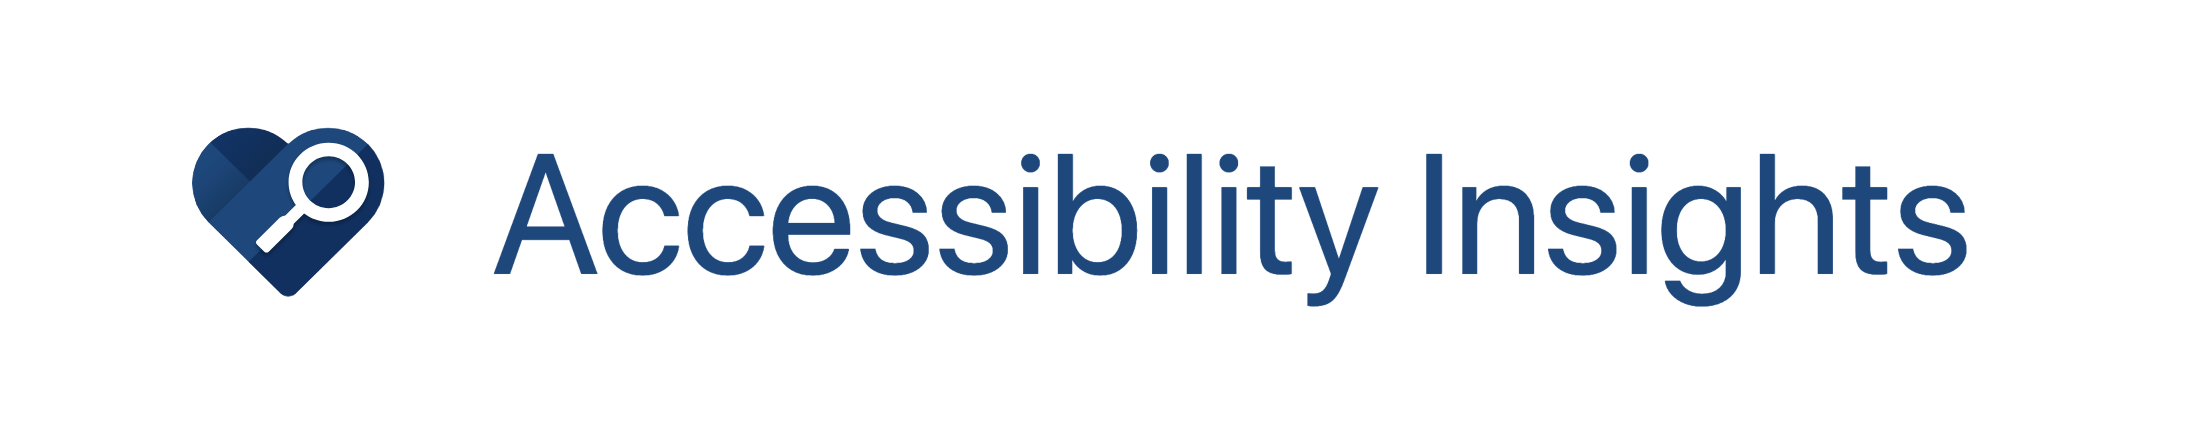 Accessibility Insights logo